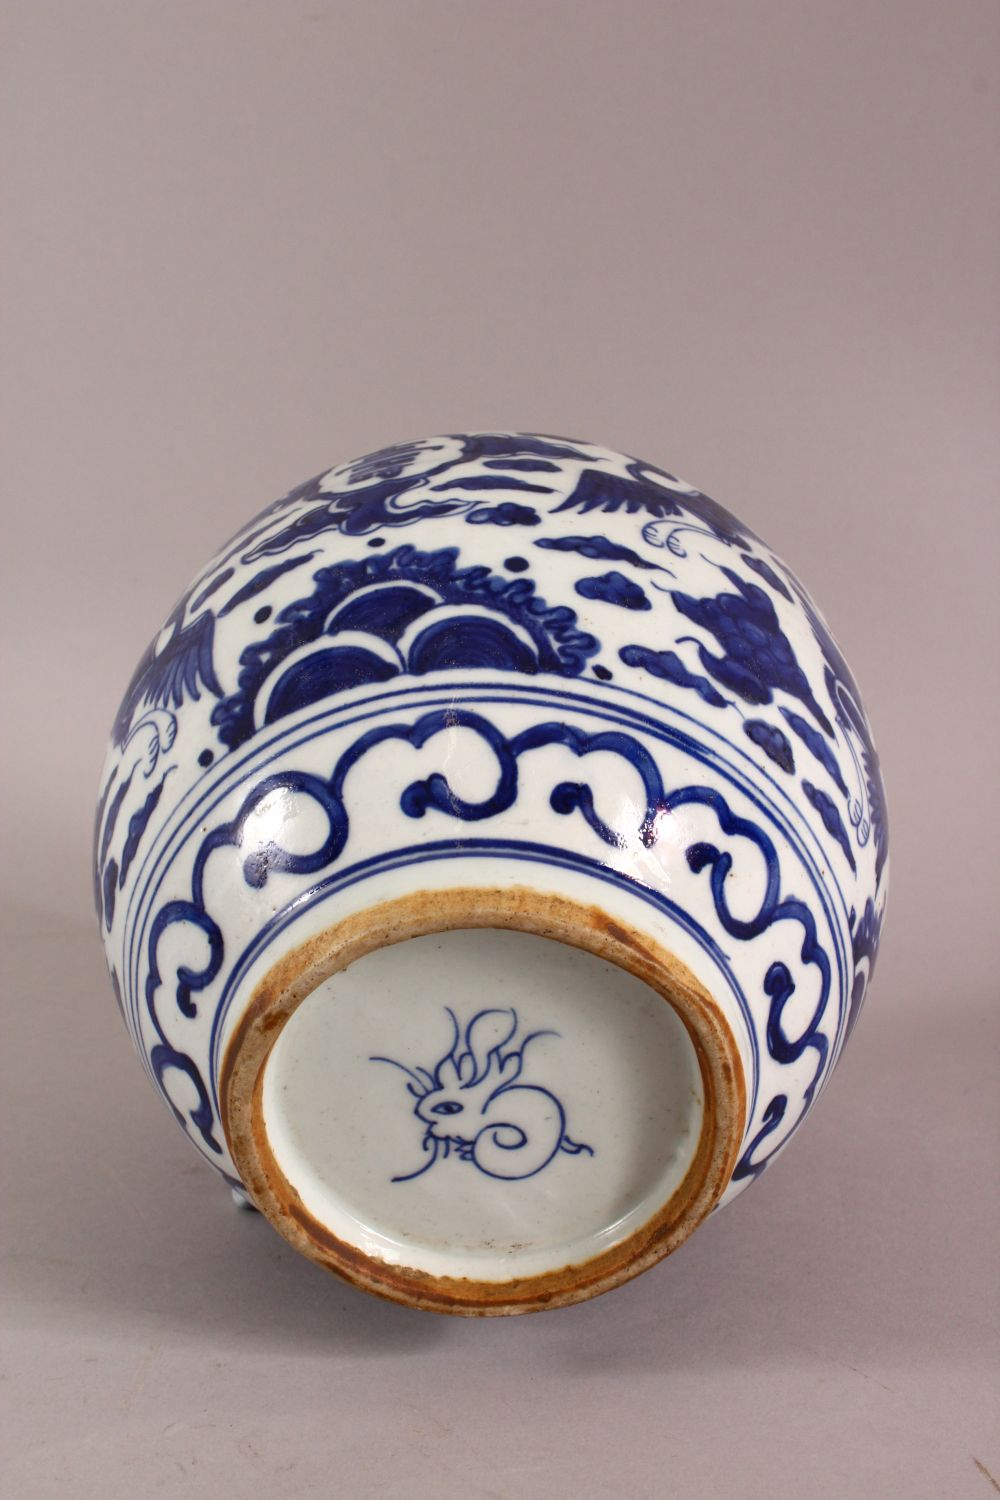 A CHINESE BLUE & WHITE PORCELAIN GINGER JAR, decorated with birds and symbols amongst clouds, rabbit - Image 6 of 7